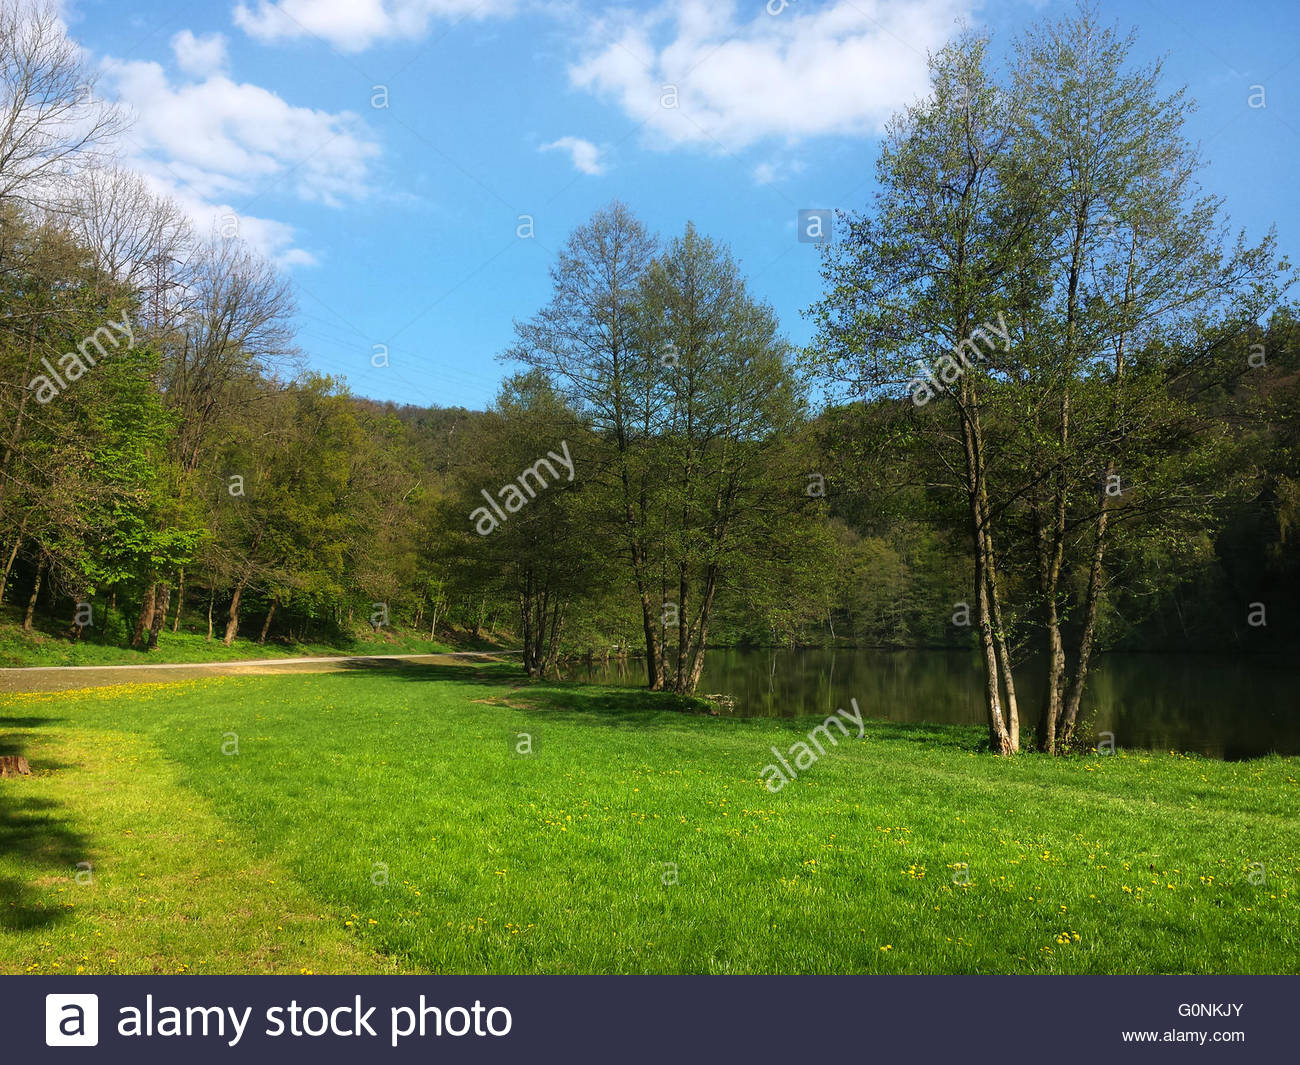 Beautiful spring day with green grass and blue sky at Marianske Udoli near Brno, Czech Republic. Phone photo - Stock Image